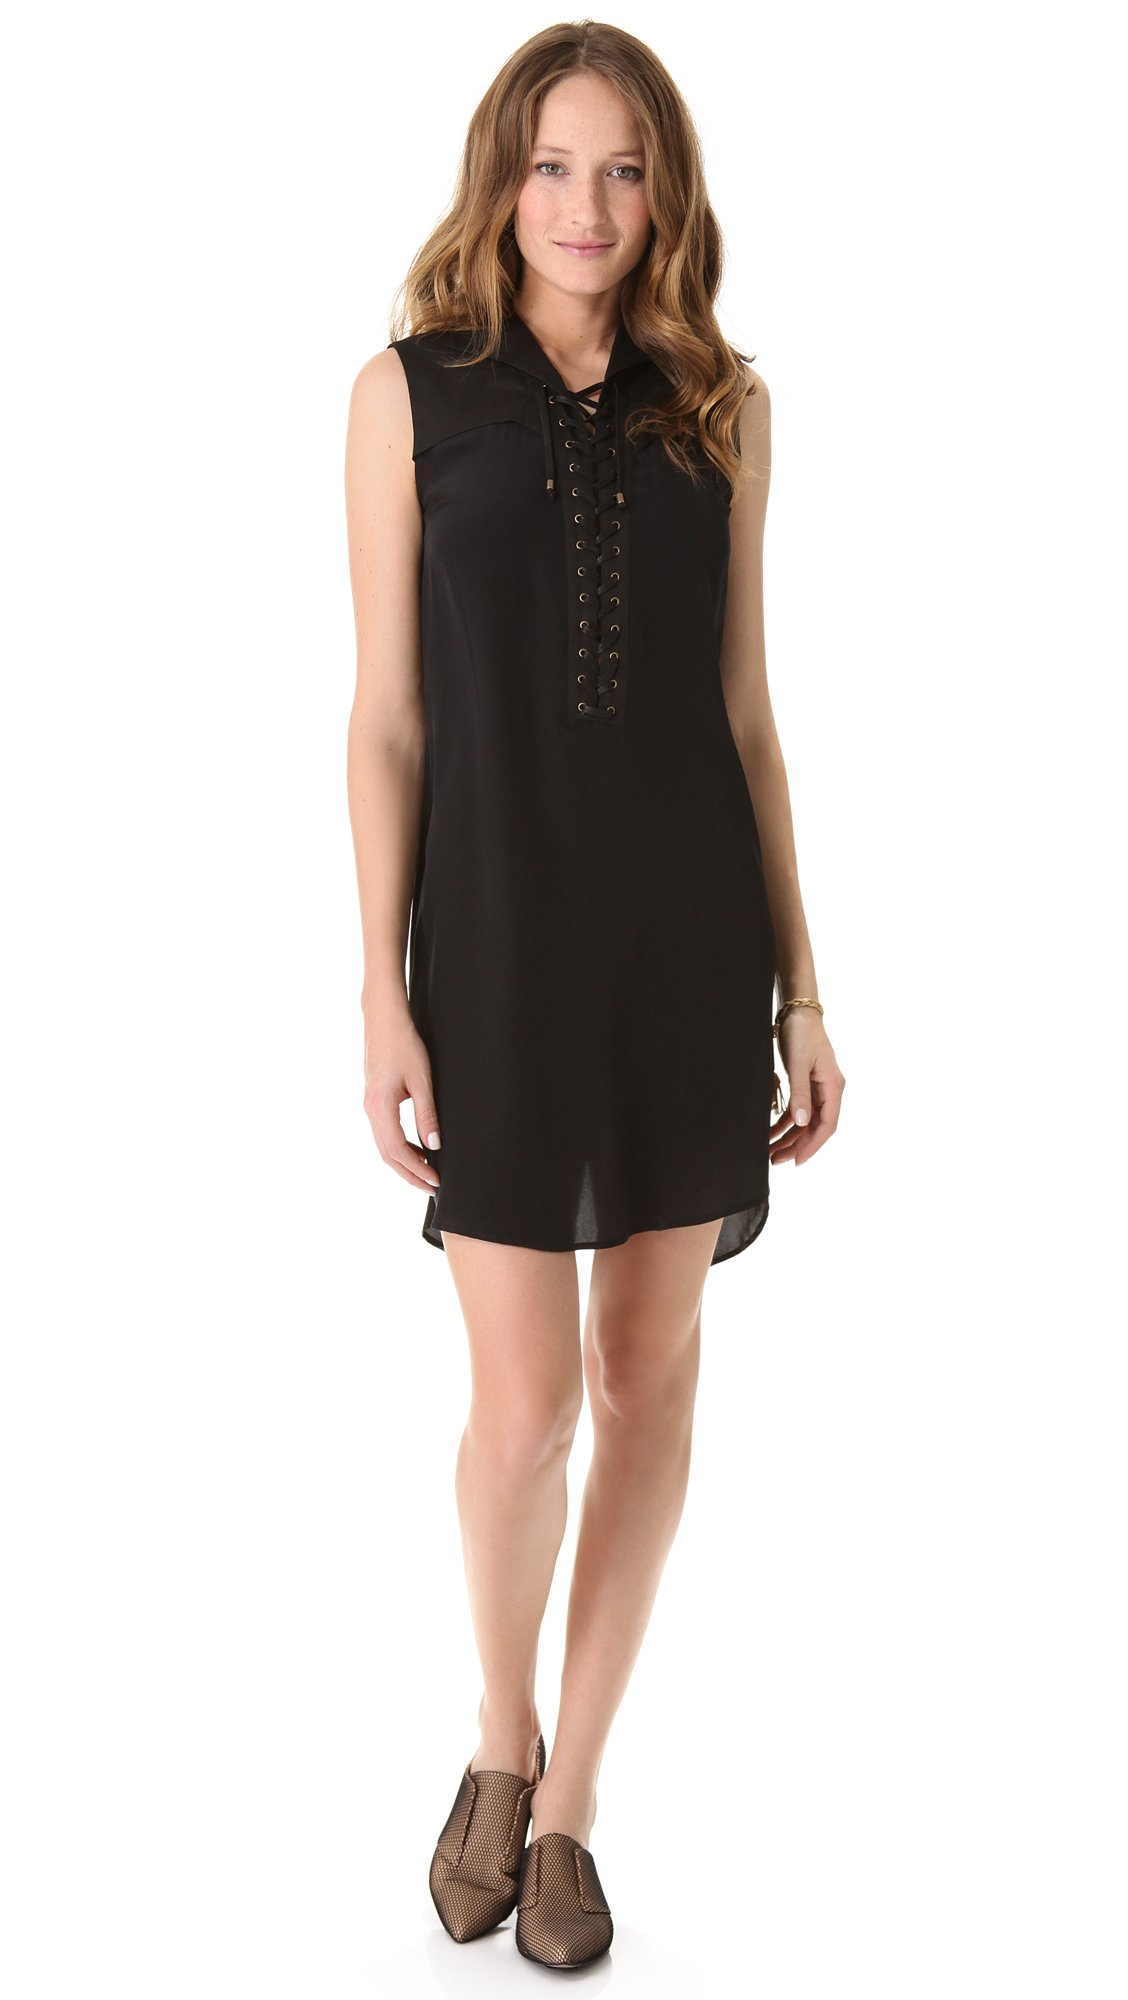 10 crosby derek lam lace up sleeveless dress in black lyst for Derek lam 10 crosby shirt dress